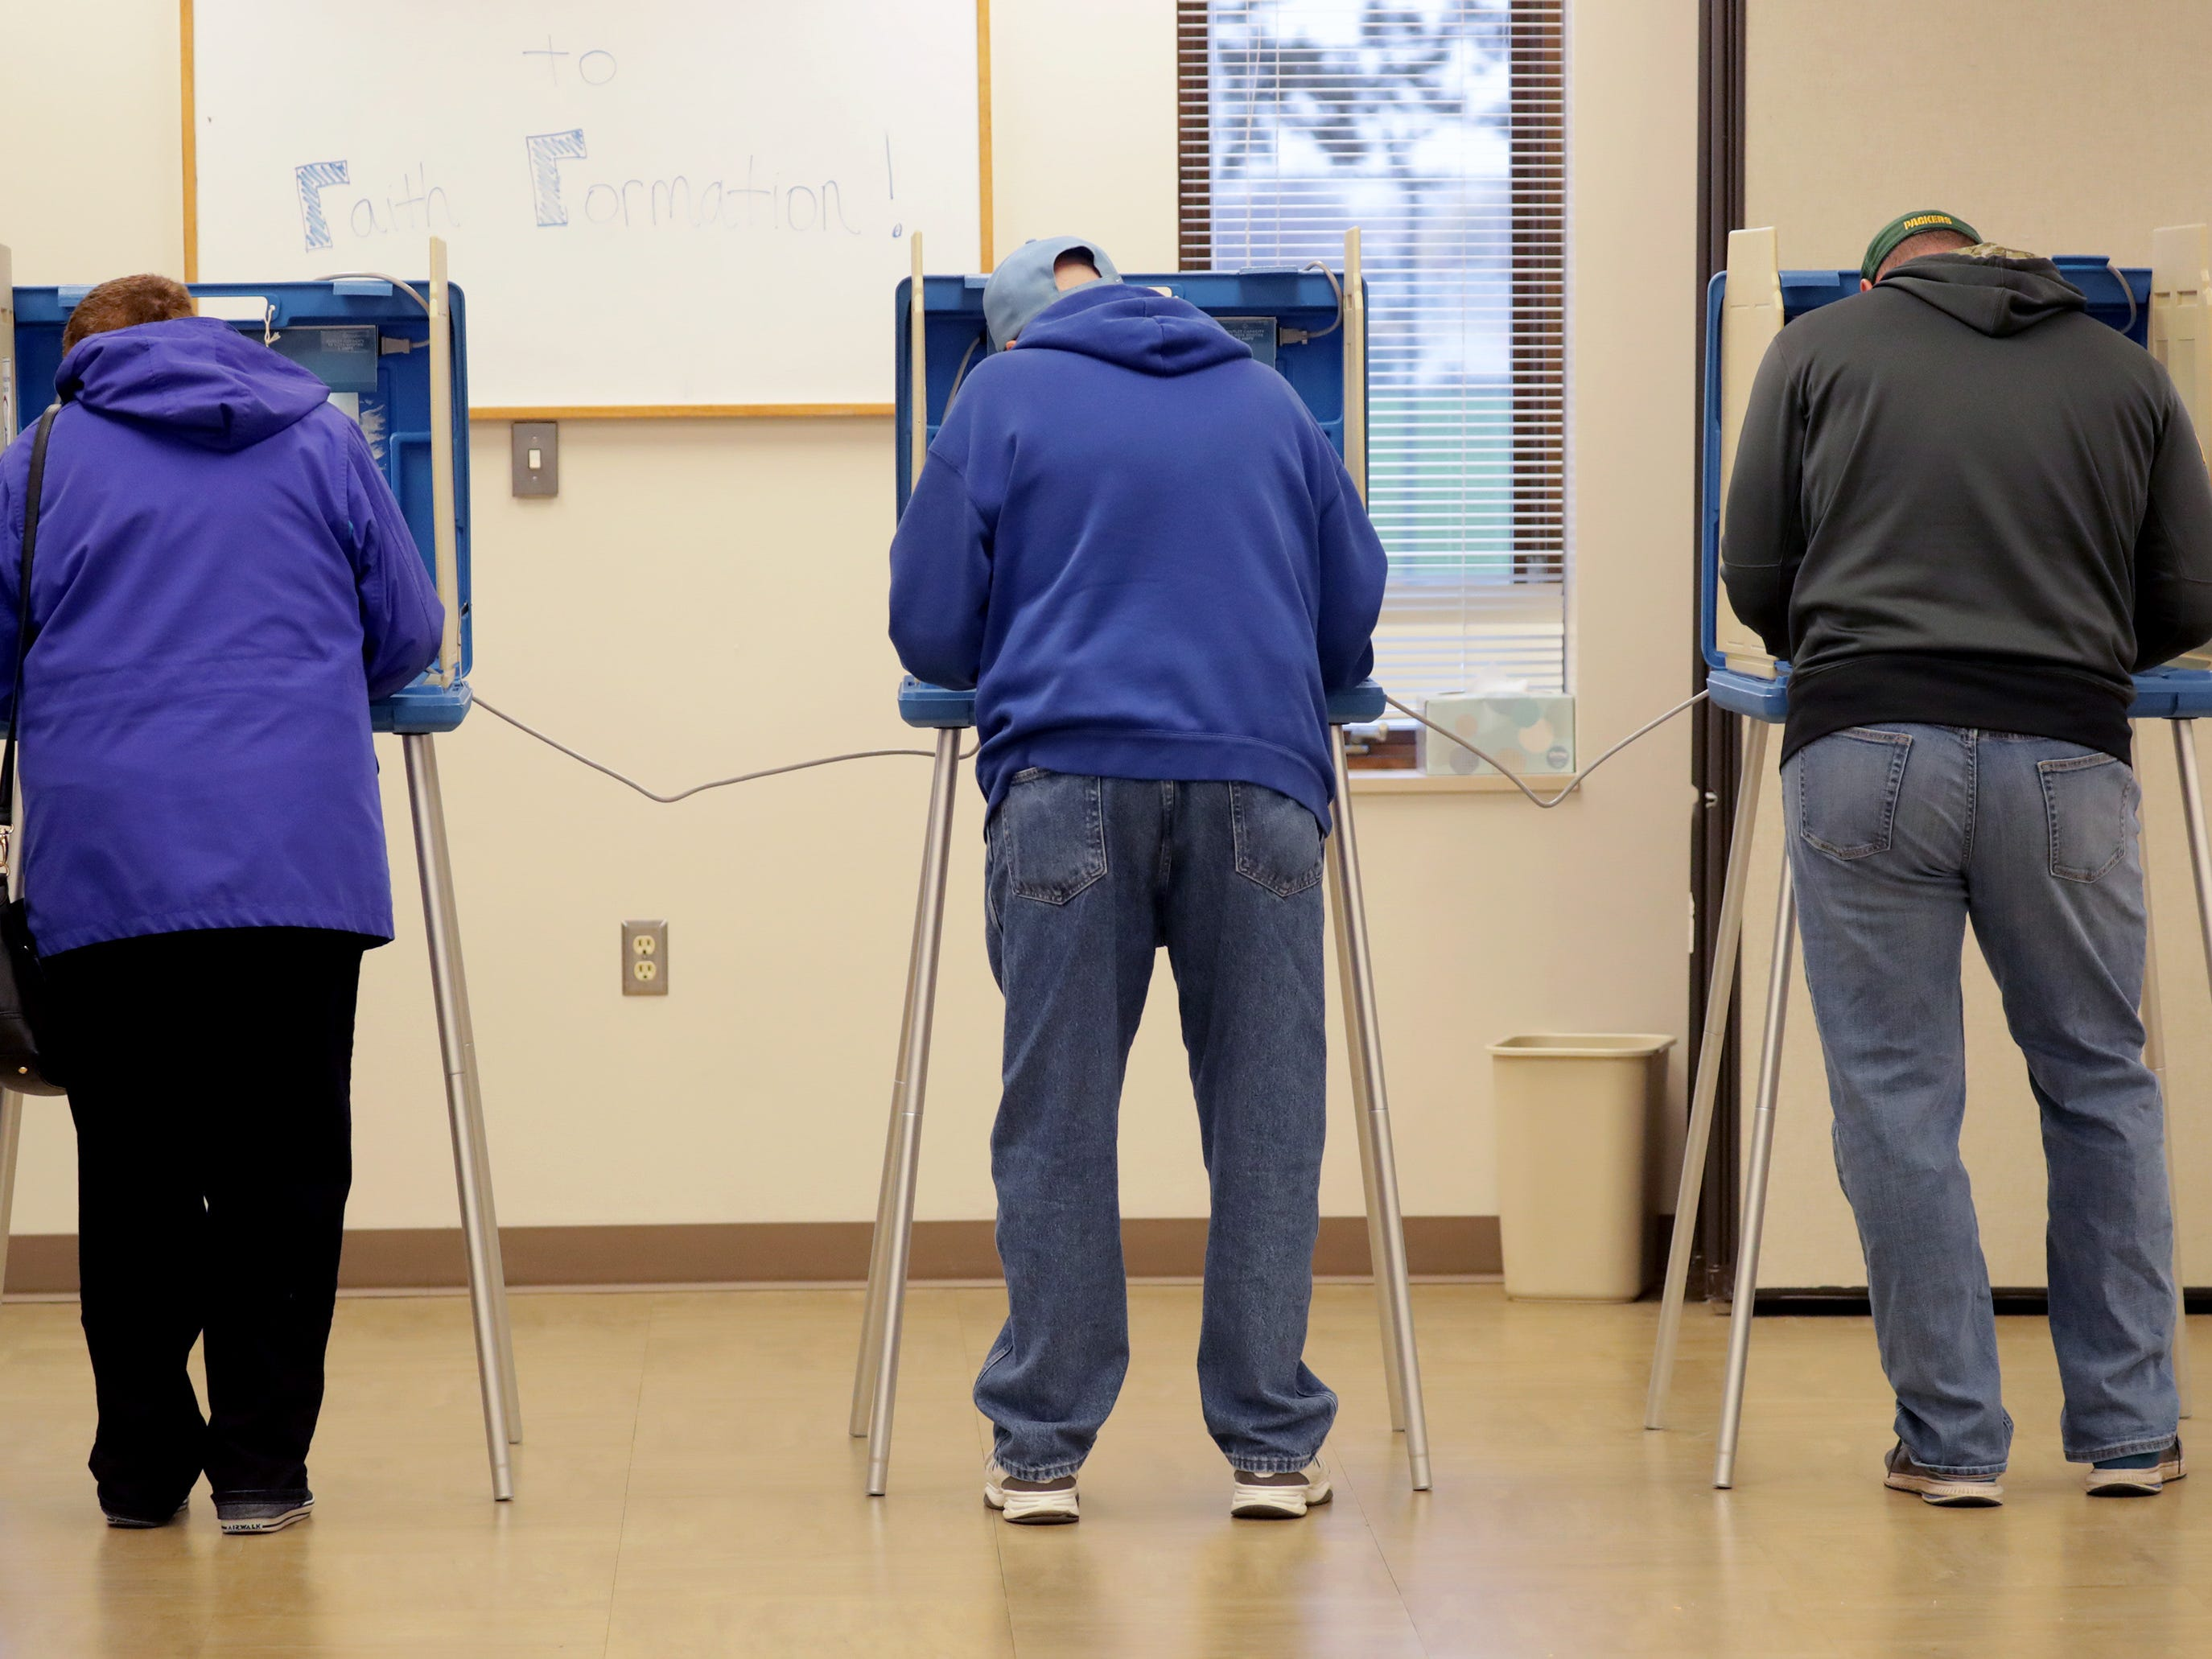 Voters cast their ballots in the midterm elections at Prince of Peace Lutheran Church on Tuesday, November 6, 2018, in Appleton, Wis.